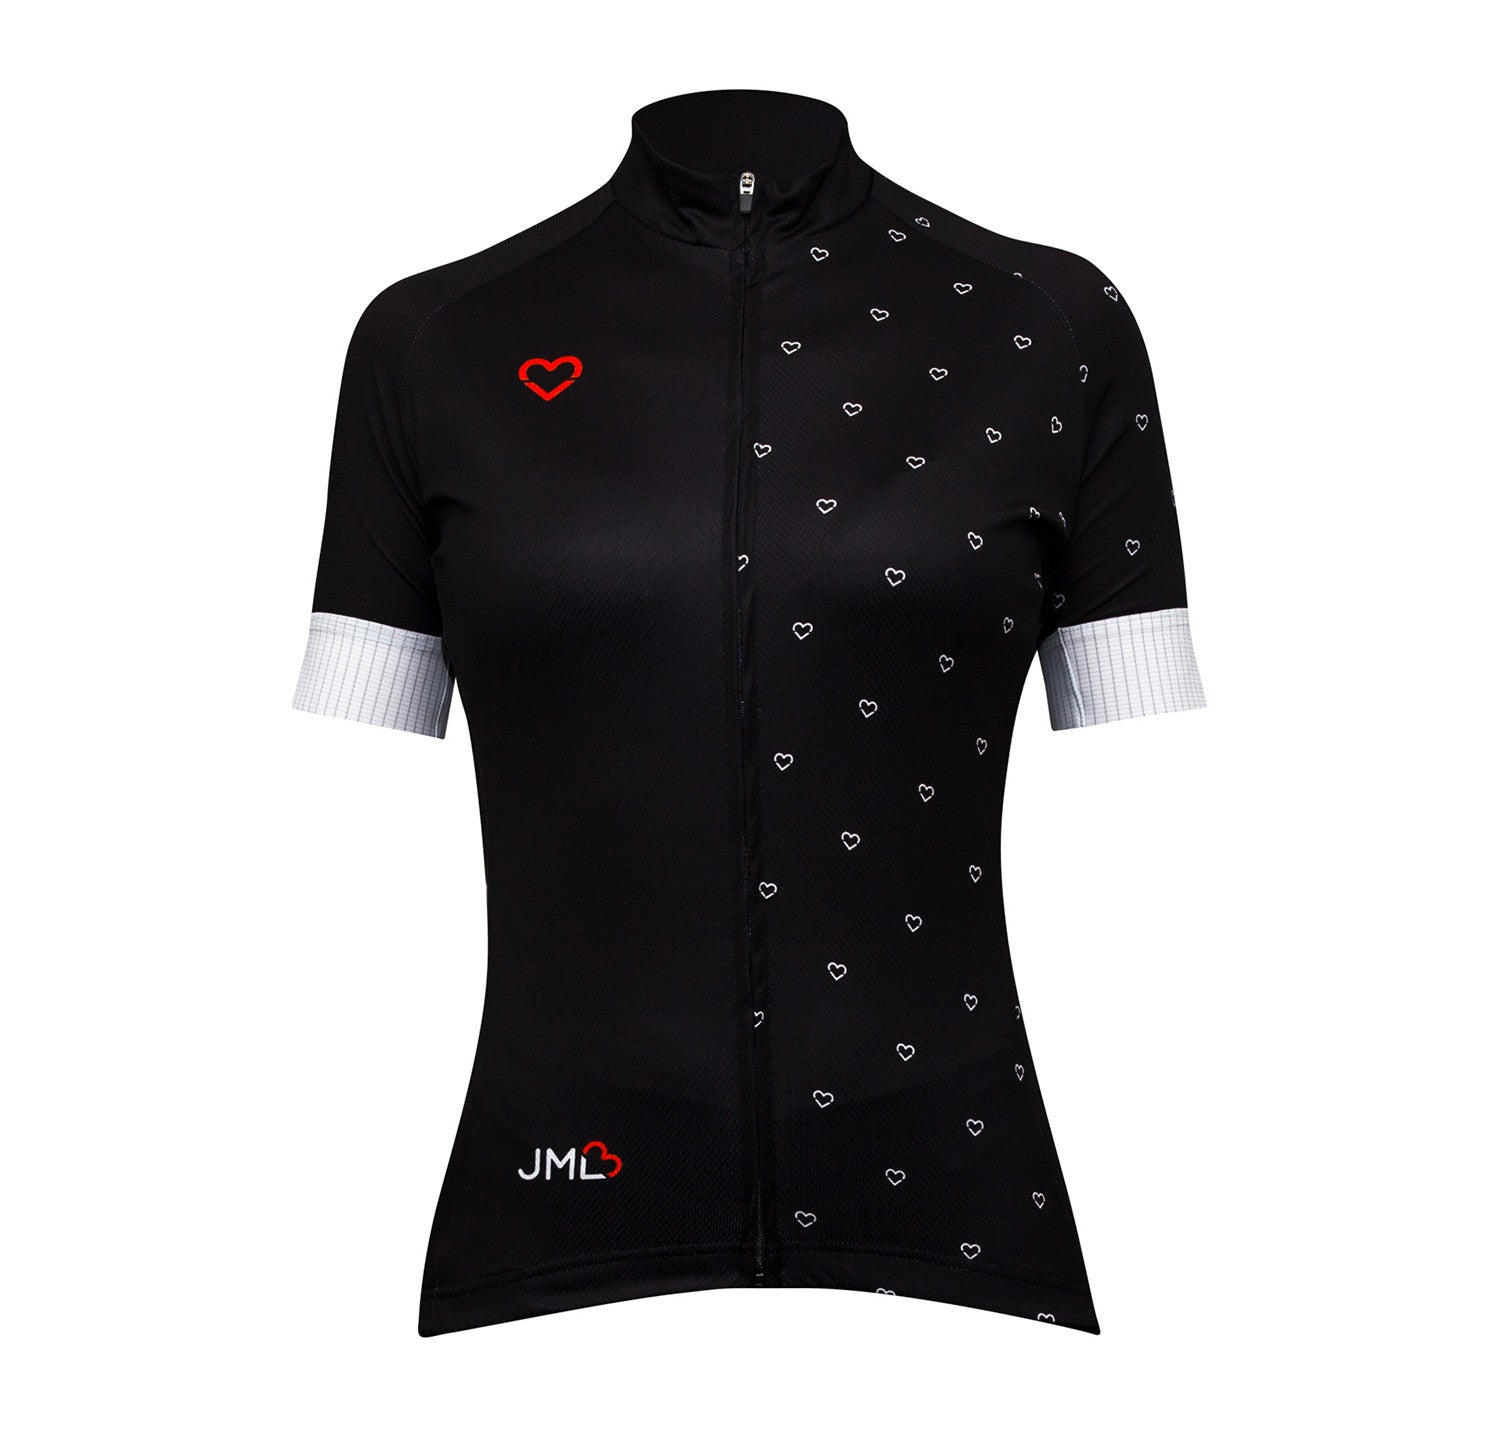 JML Trend Jersey Women - Jerseys Made with Love